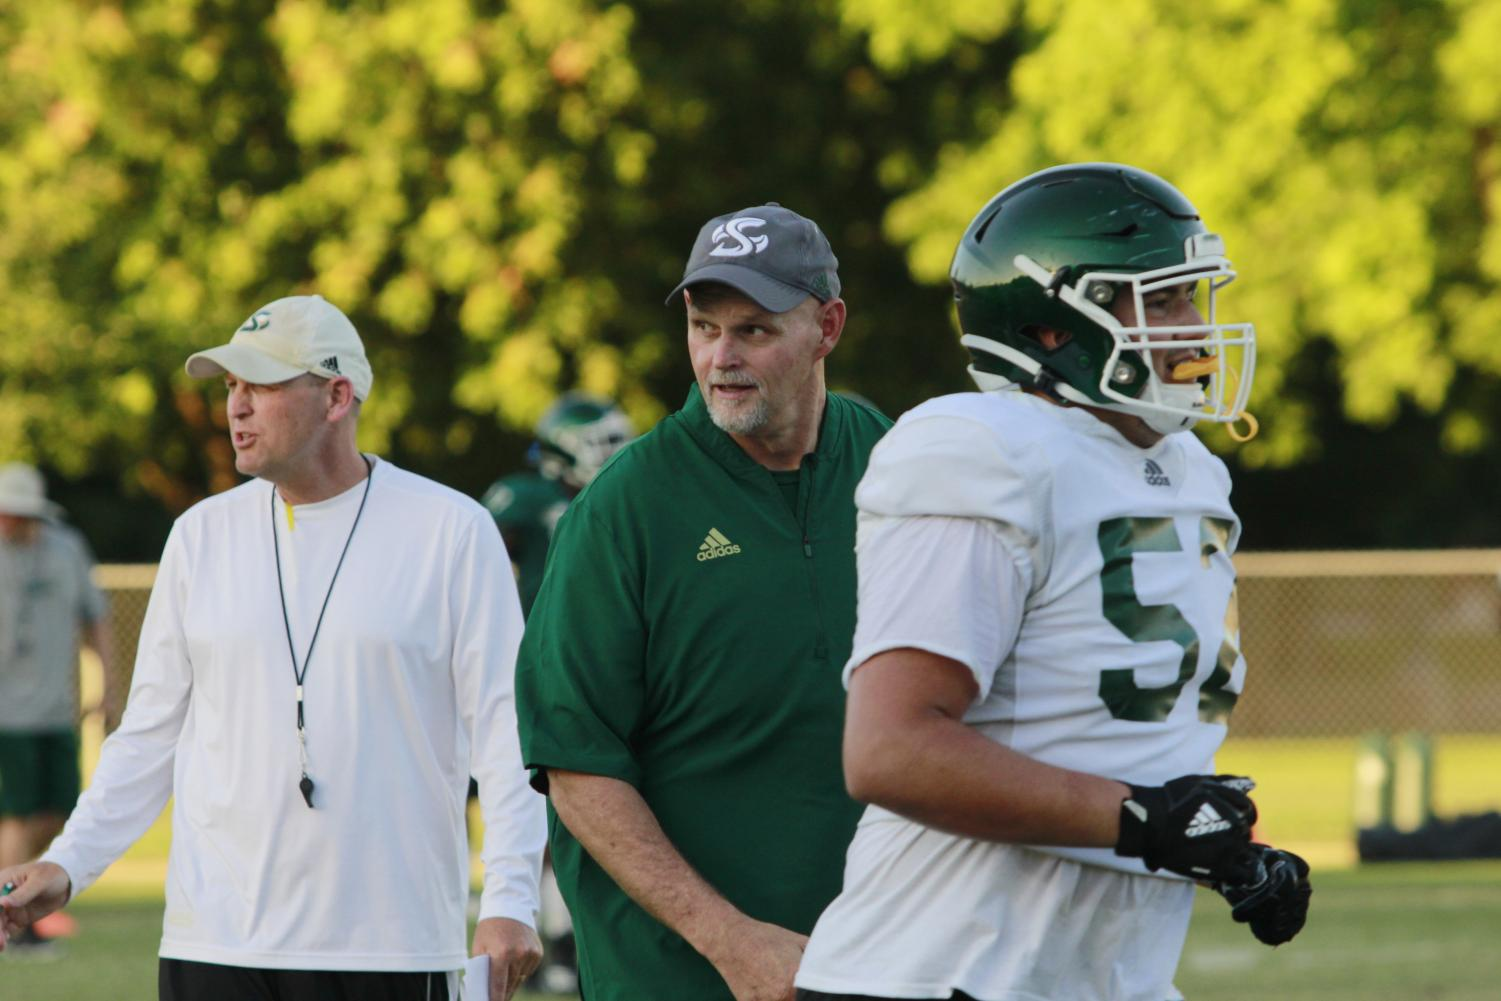 Sac+State+head+coach+Troy+Taylor+and+assistant+head+coach+Kris+Richardson+speak+to+players+during+training+camp+on+Tuesday%2C+August+12+at+the+practice+field.+Richardson+is+one+of+four+coaches+from+Folsom+High+School+that+joined+Taylor%27s+staff.